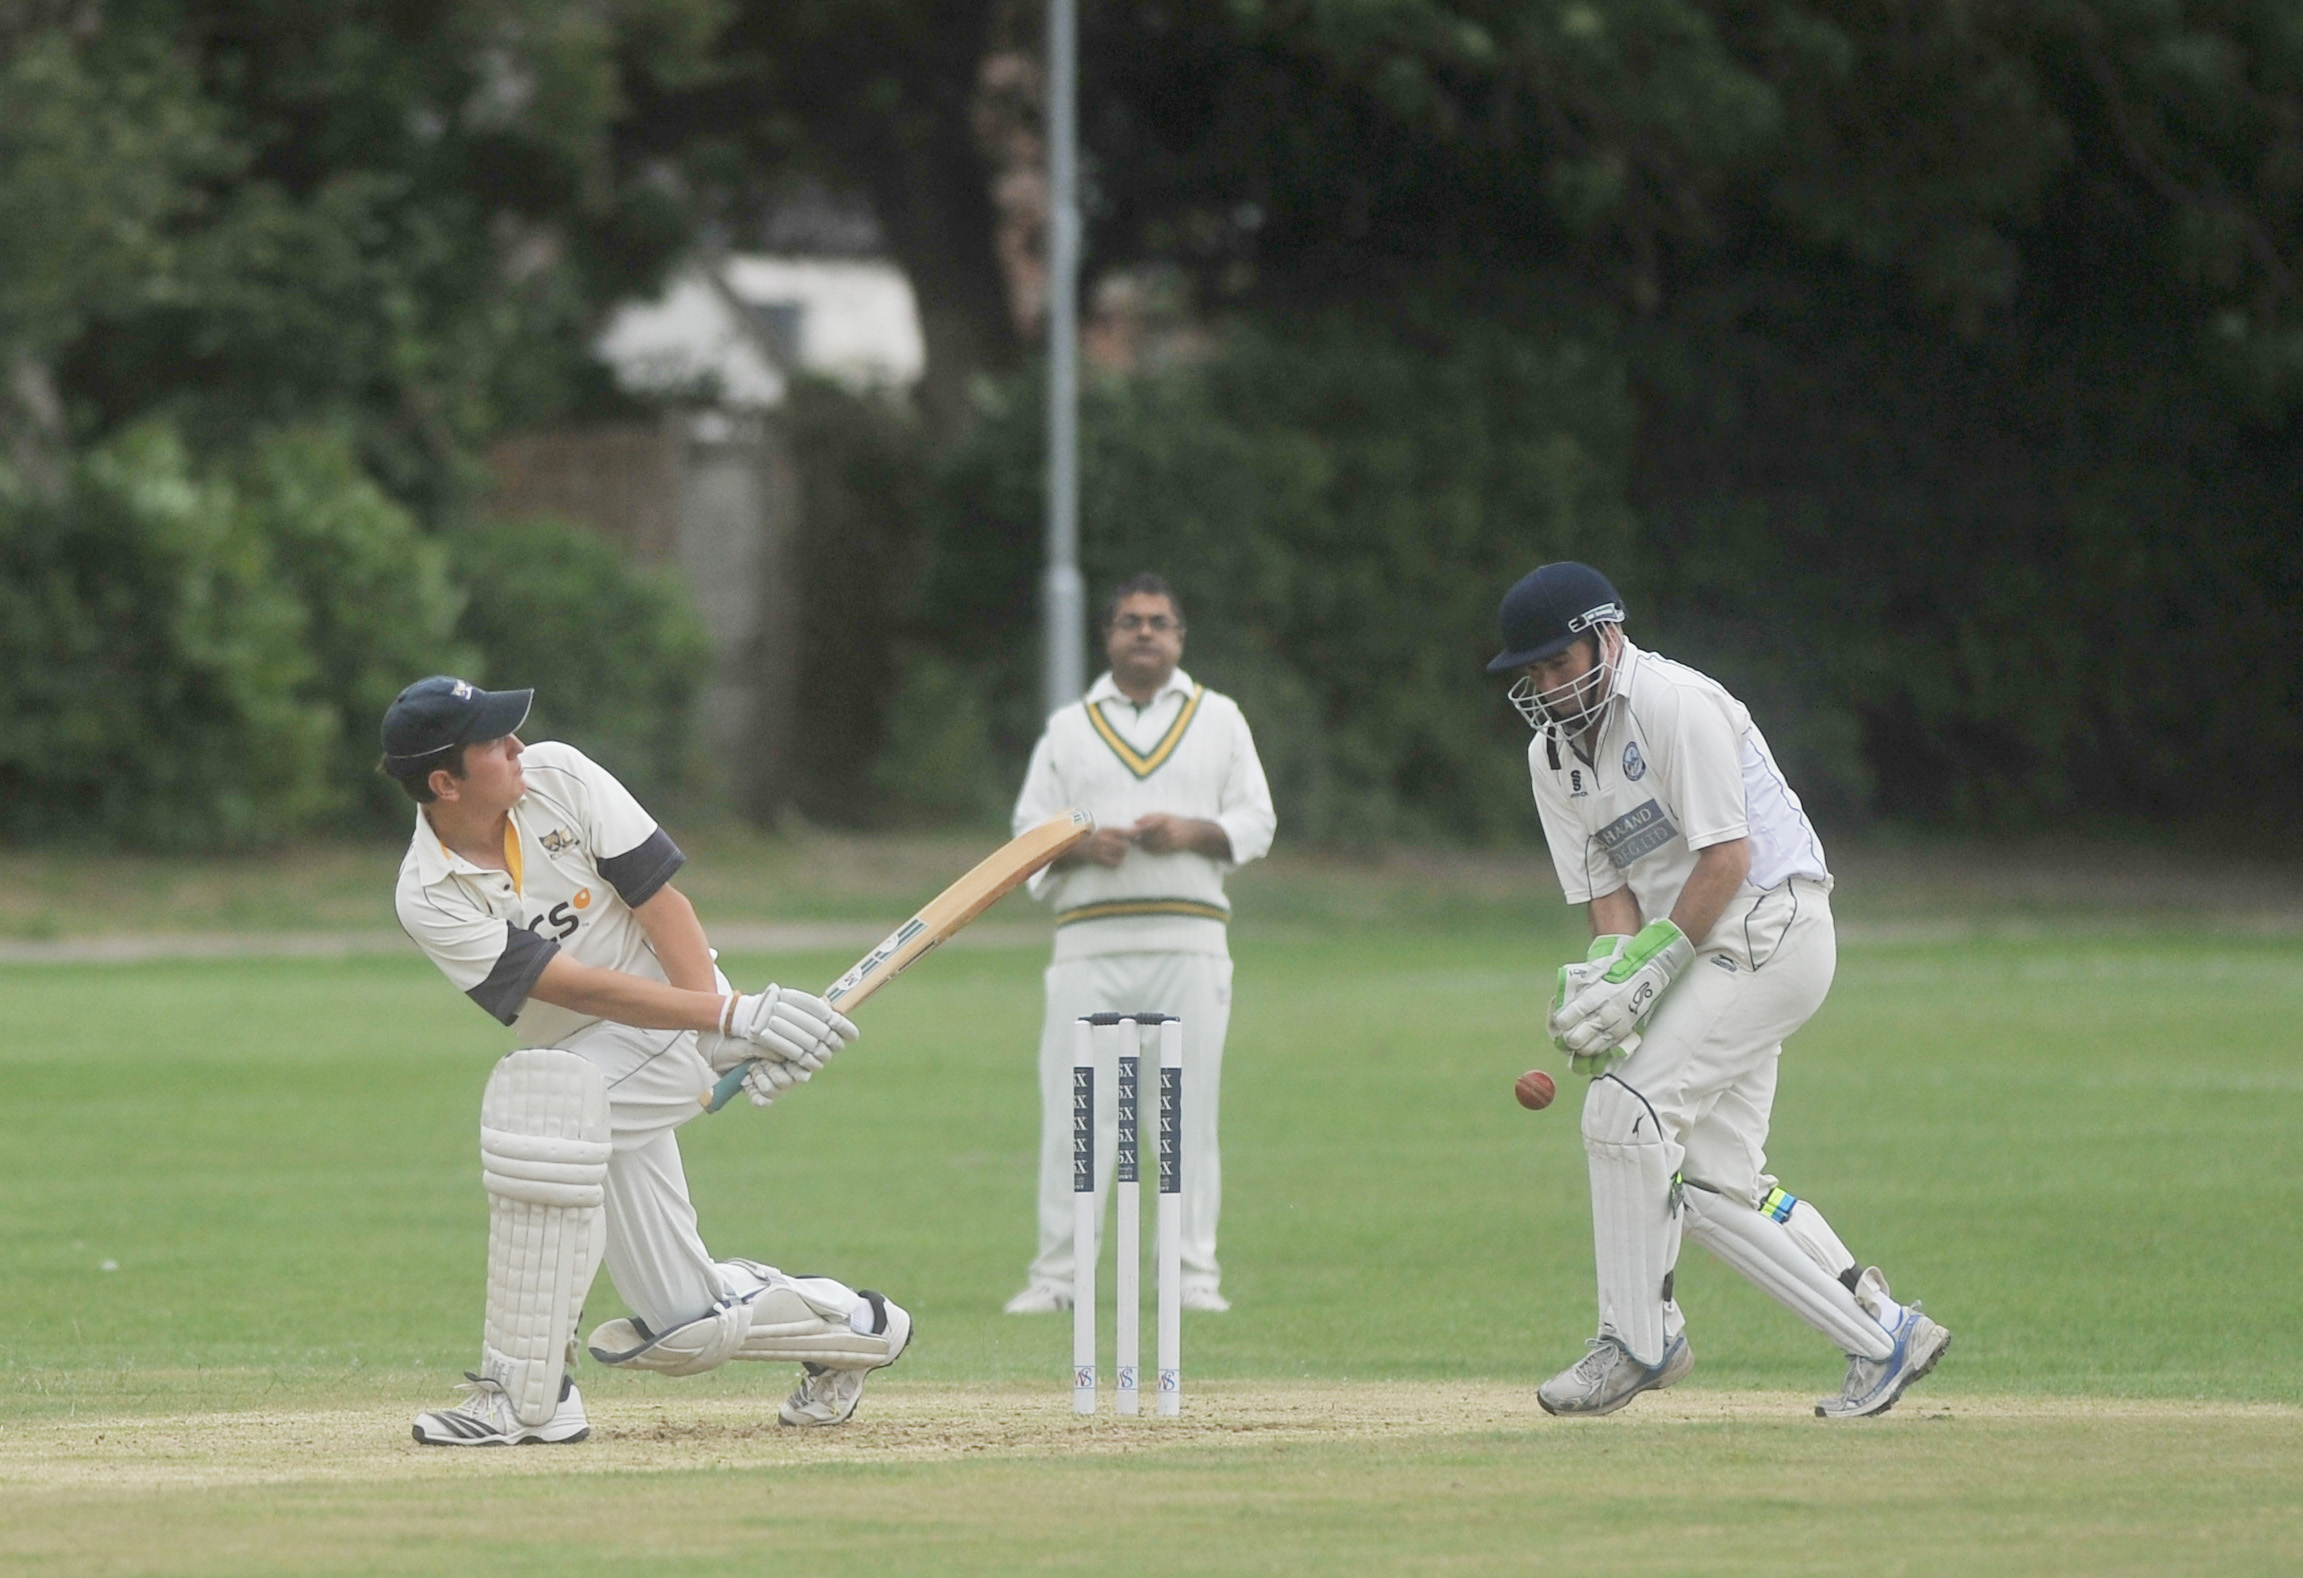 Heytesbury's Ed Read looks to play the ball down the leg side